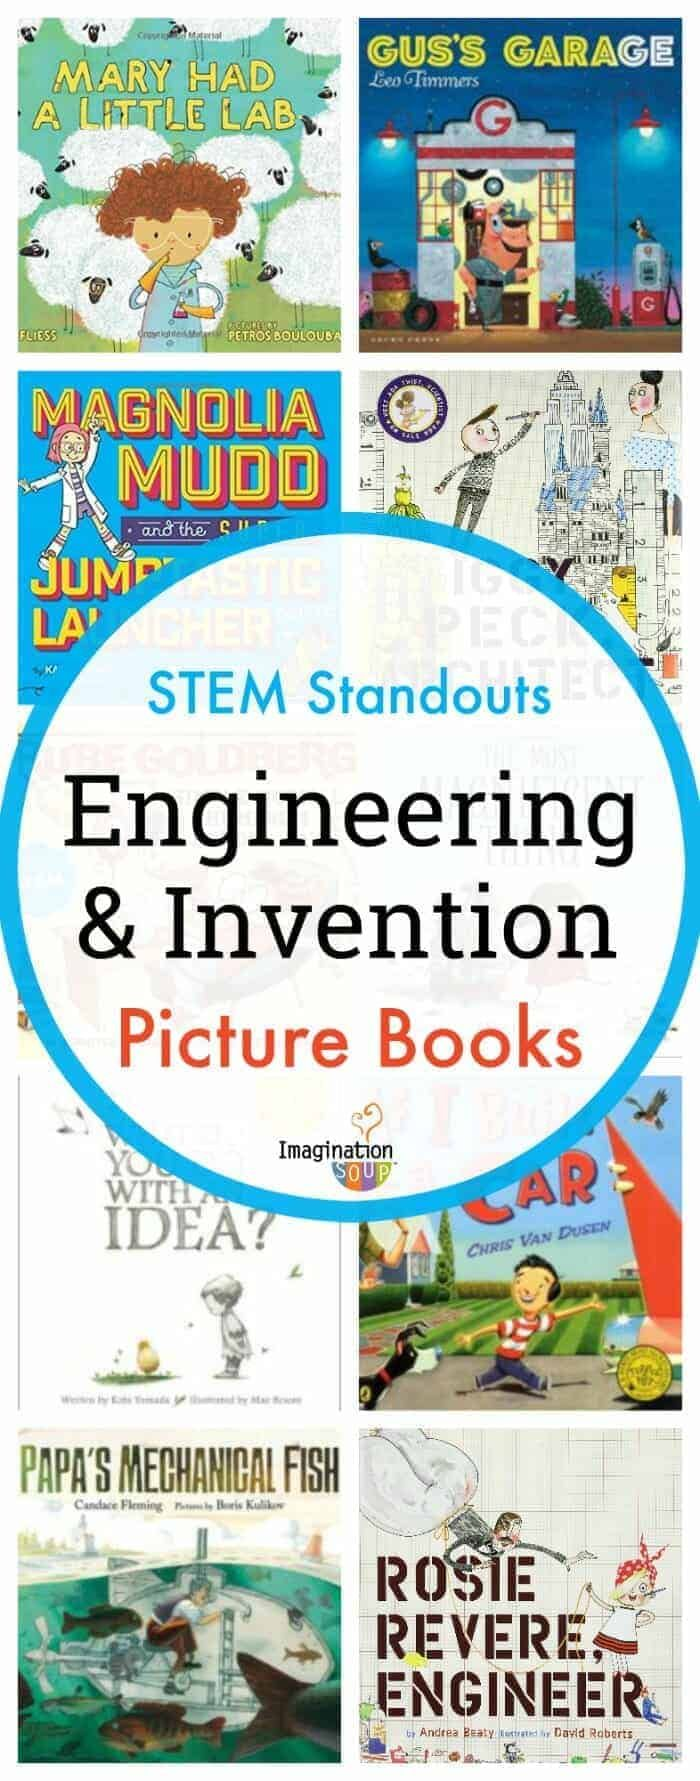 Standout STEM Engineering Picture Books for Kids